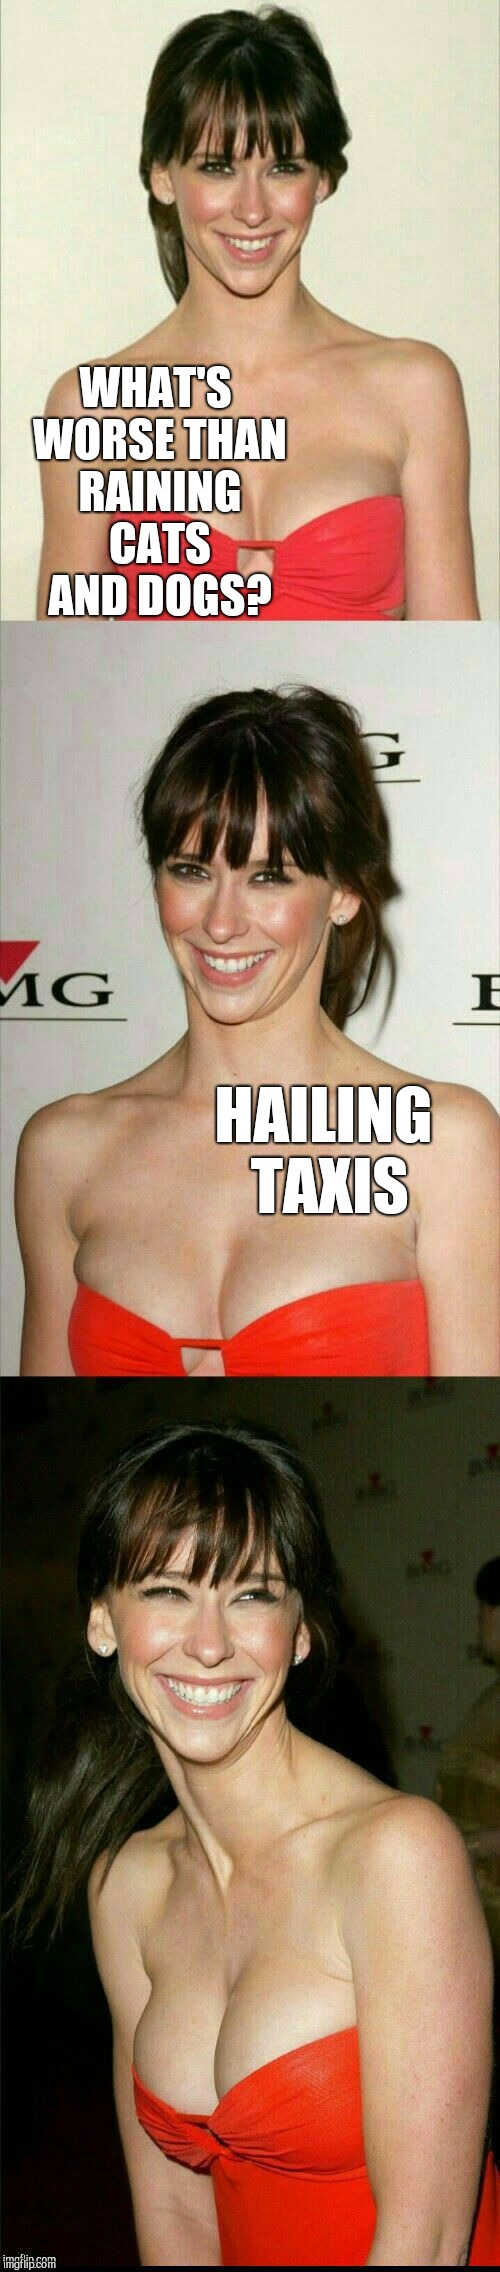 Jennifer Love Hewitt joke template  | WHAT'S WORSE THAN RAINING CATS AND DOGS? HAILING TAXIS | image tagged in jennifer love hewitt joke template,jbmemegeek,jennifer love hewitt,bad puns | made w/ Imgflip meme maker